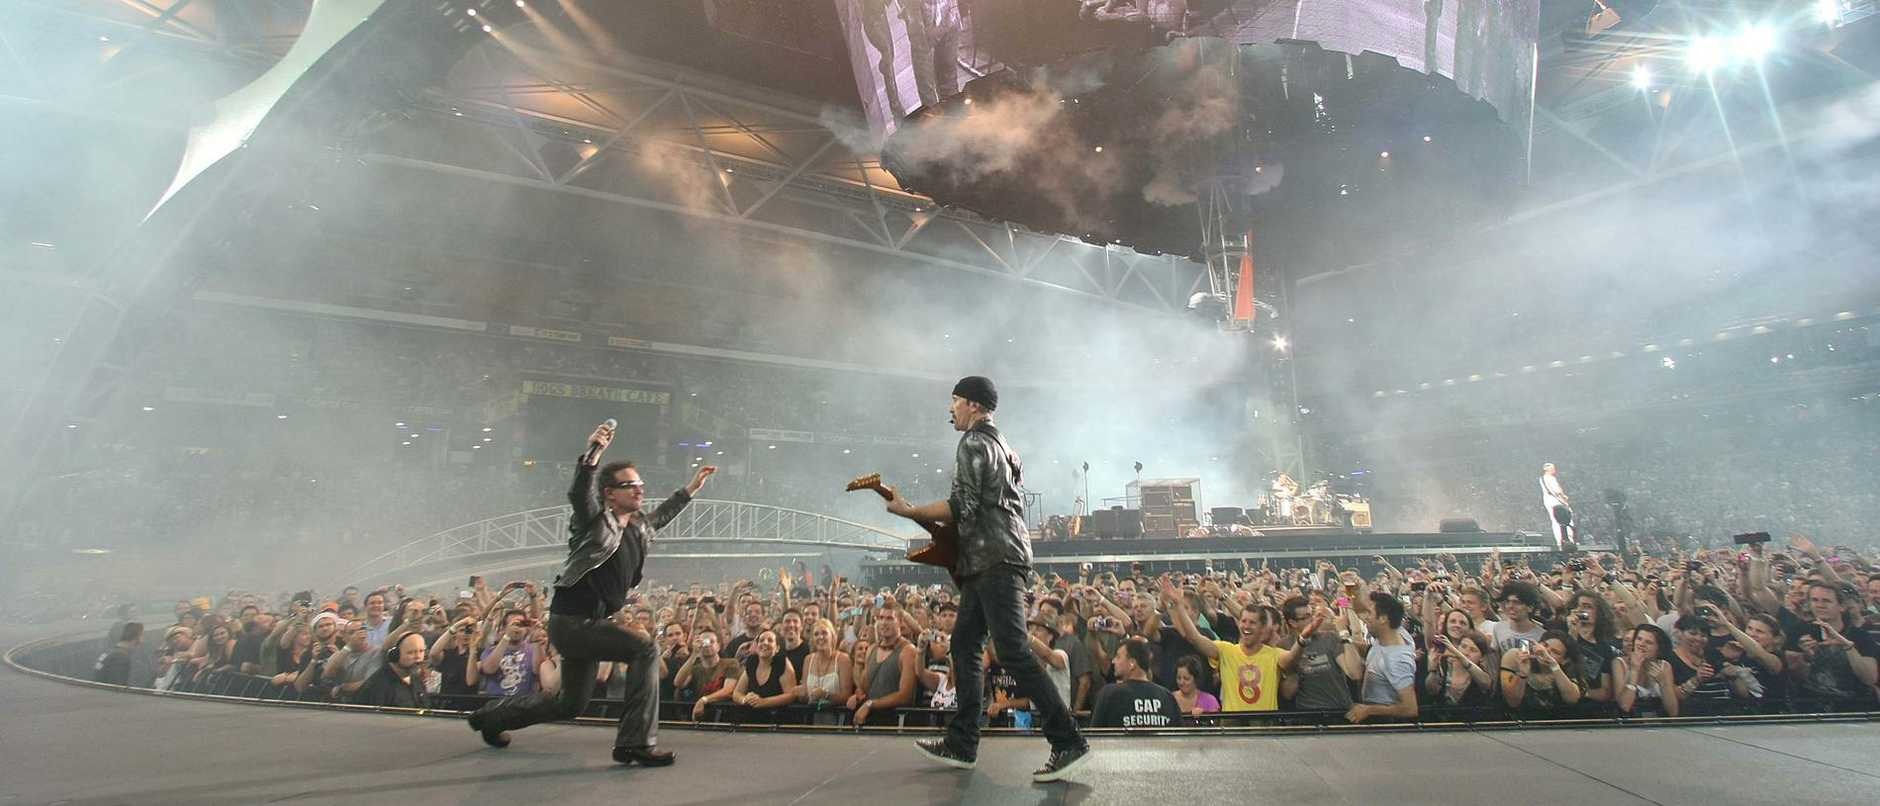 U2 set an astonishing new standard with their 360° tour at Suncorp Stadium in 2010